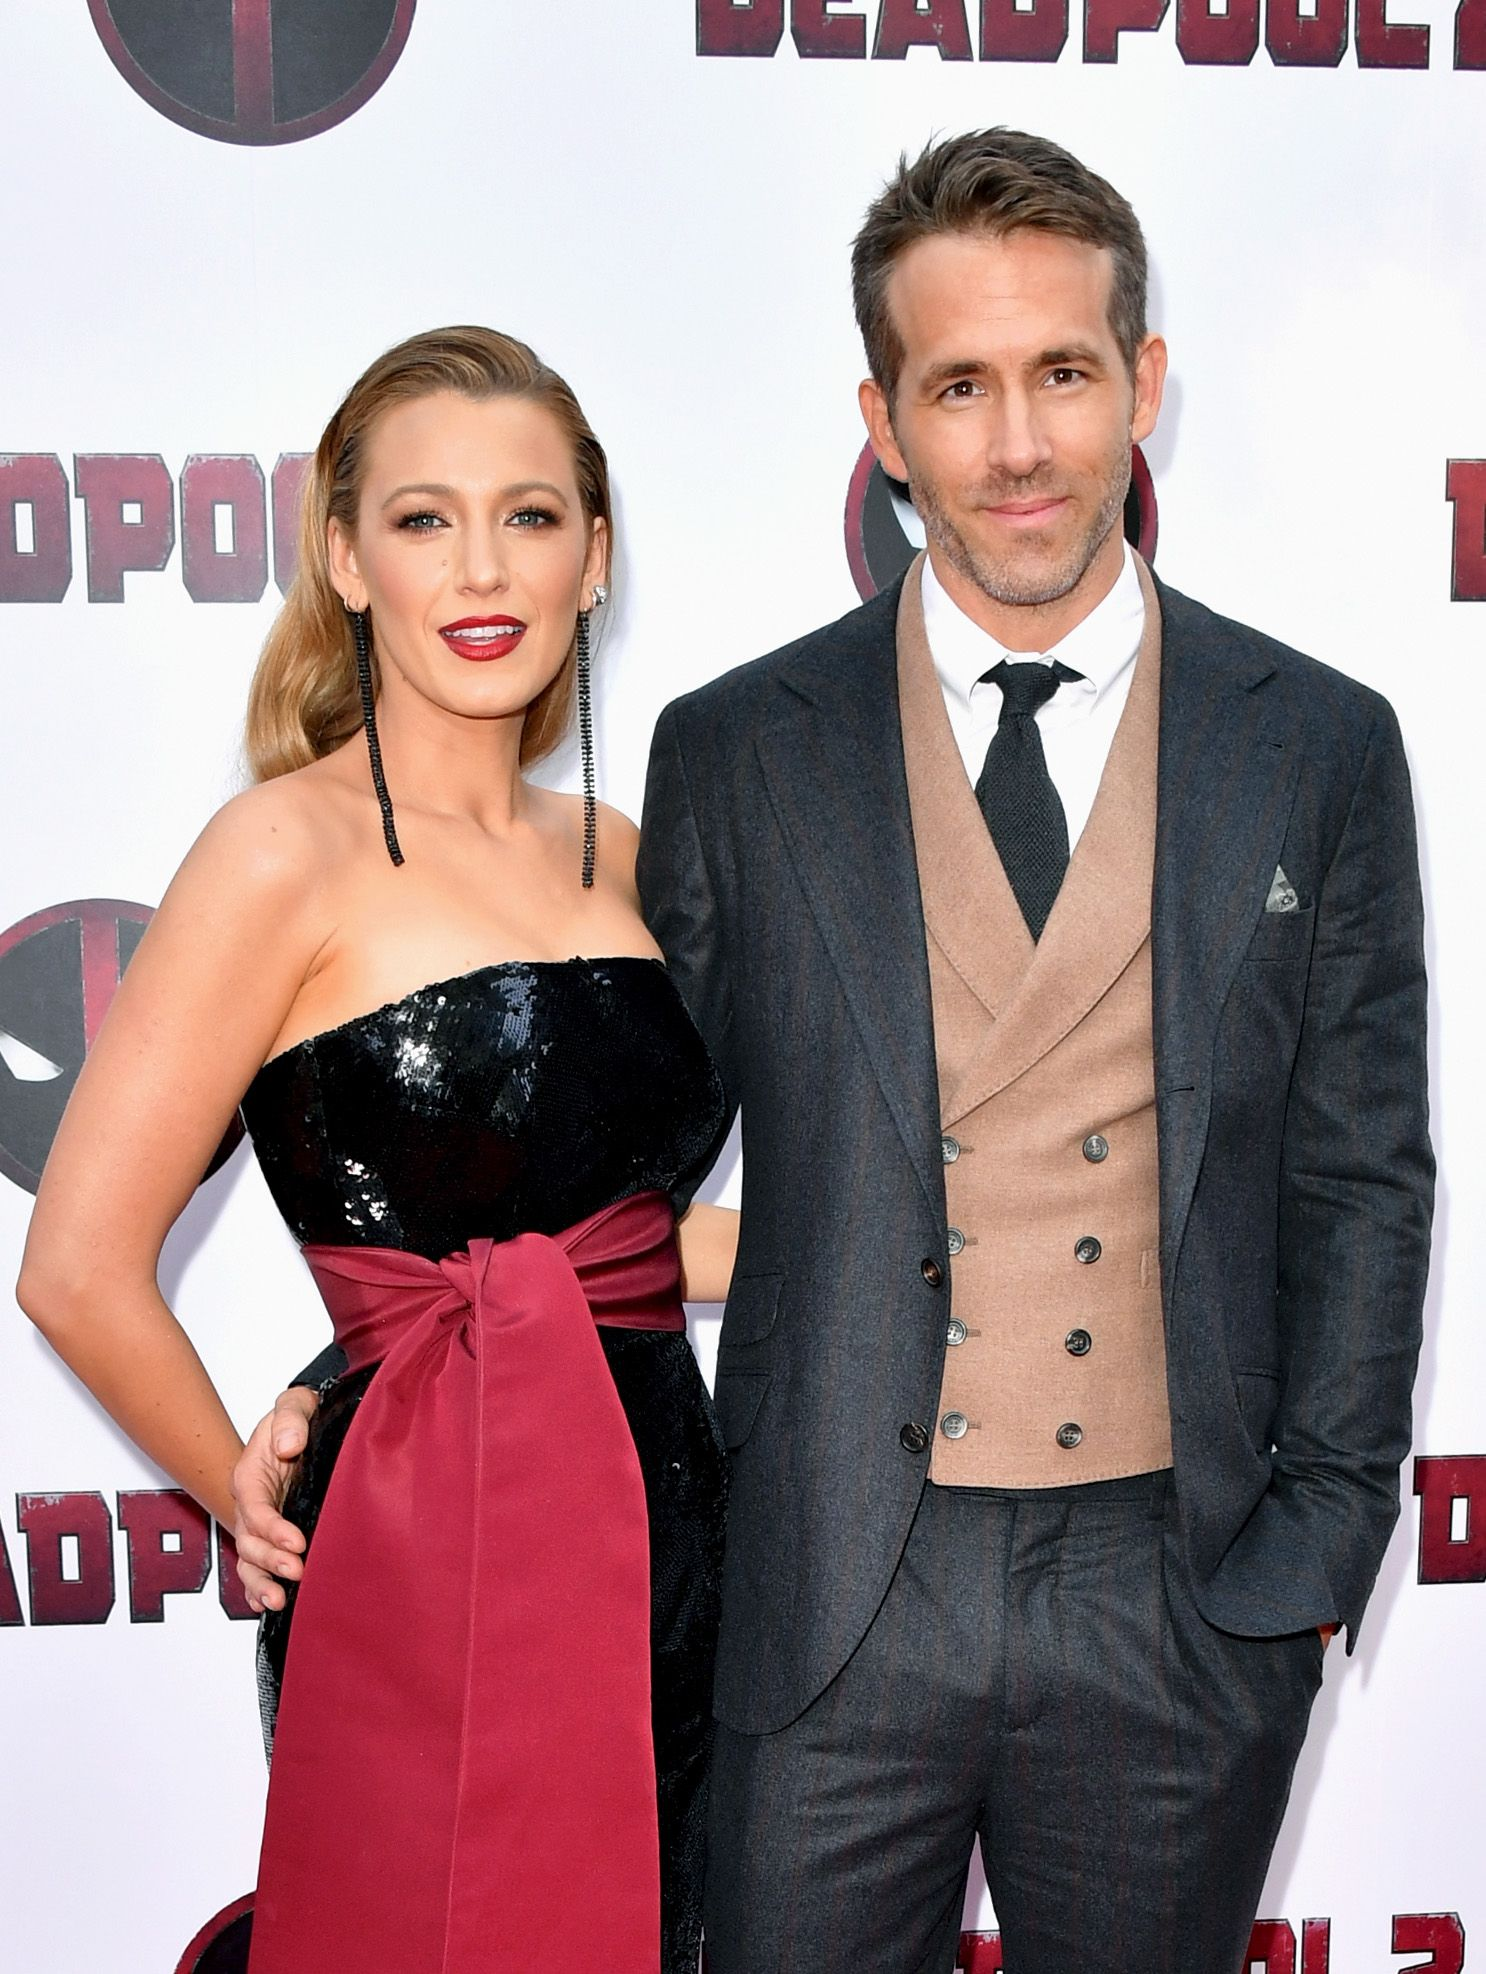 Ryan Reynolds Shares The First Photo Of His Third Child And Now We Know Its Sex